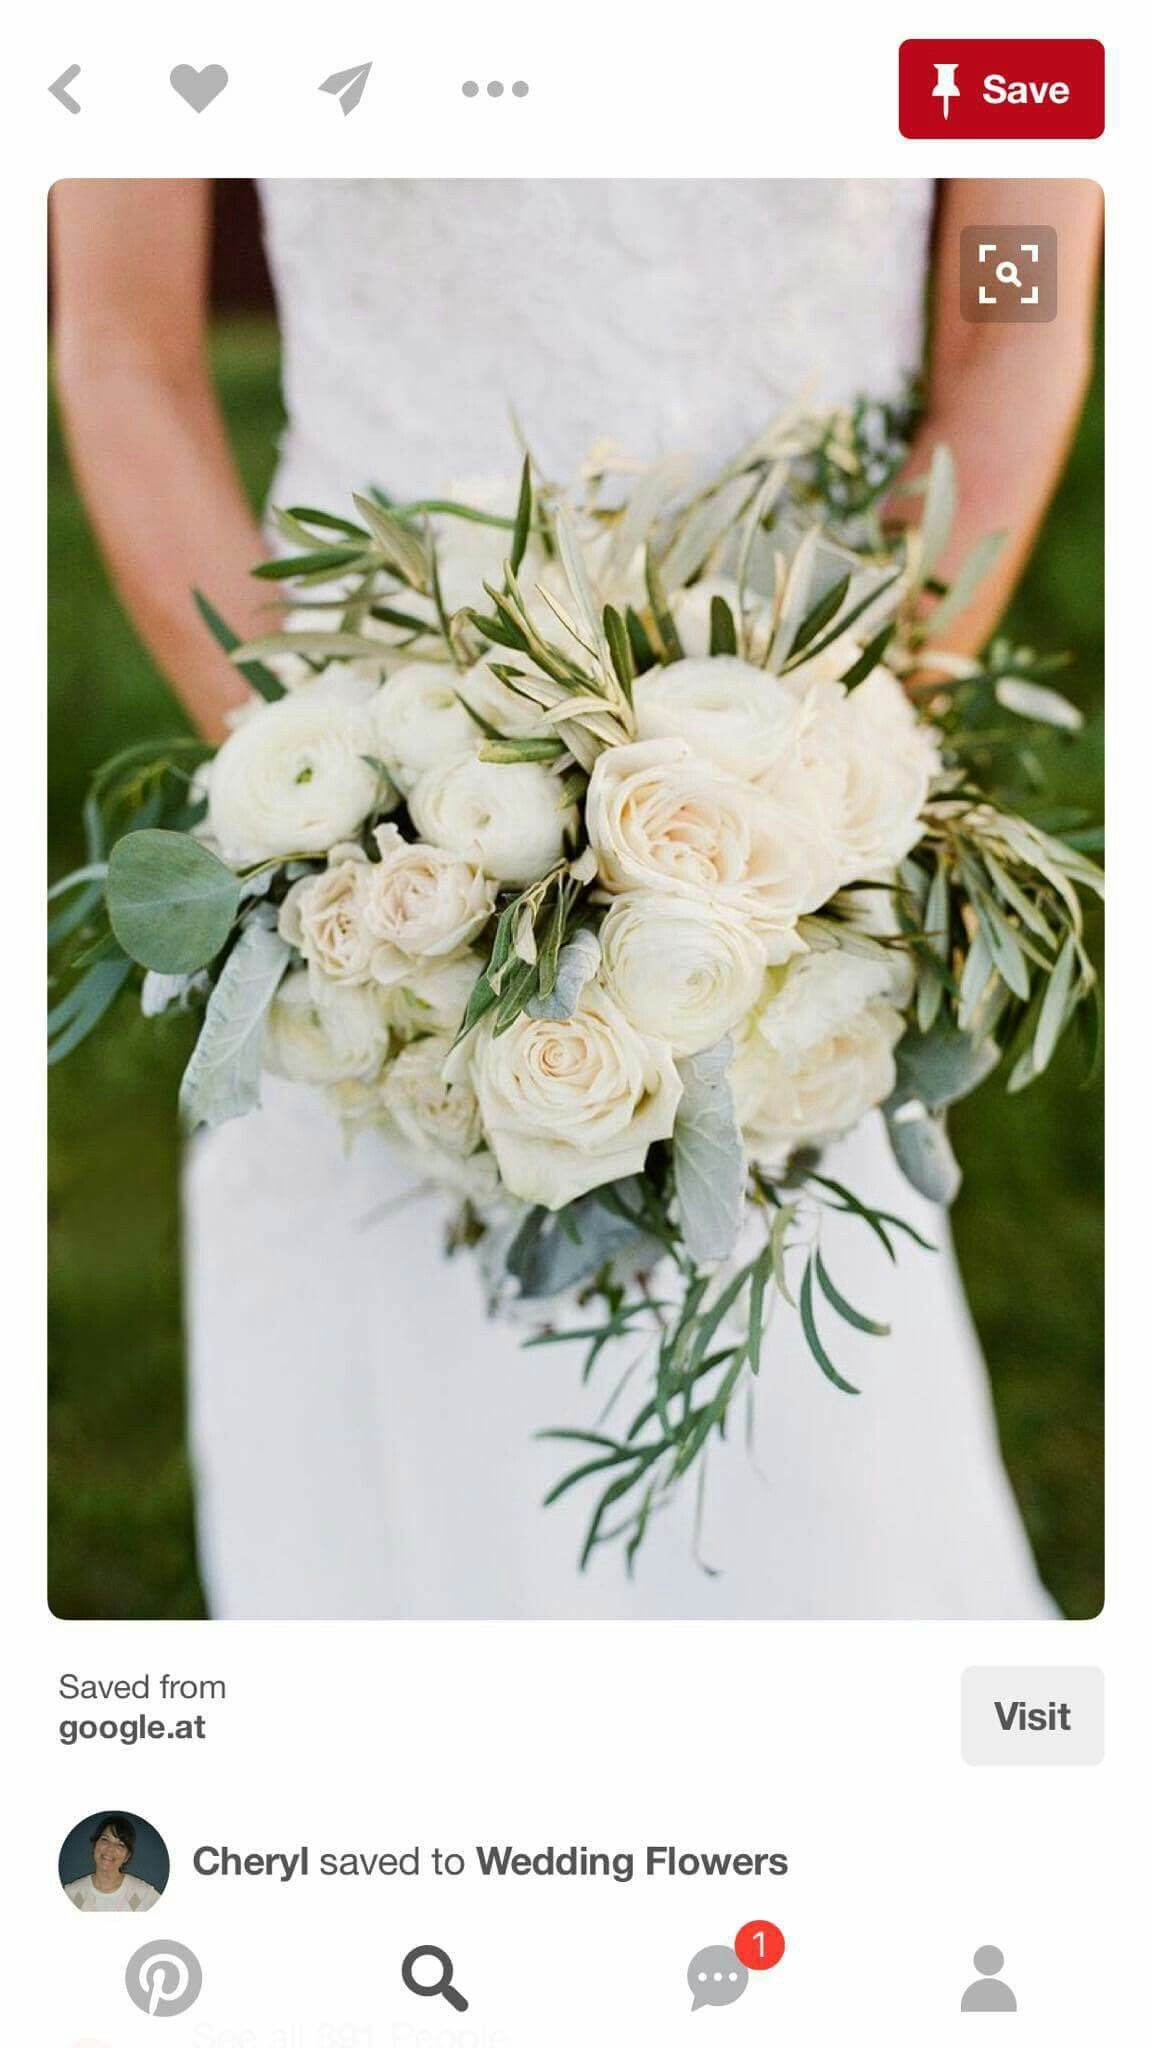 Pin by Sarah Holt Forman on Wedddinggggg | Wedding bouquets